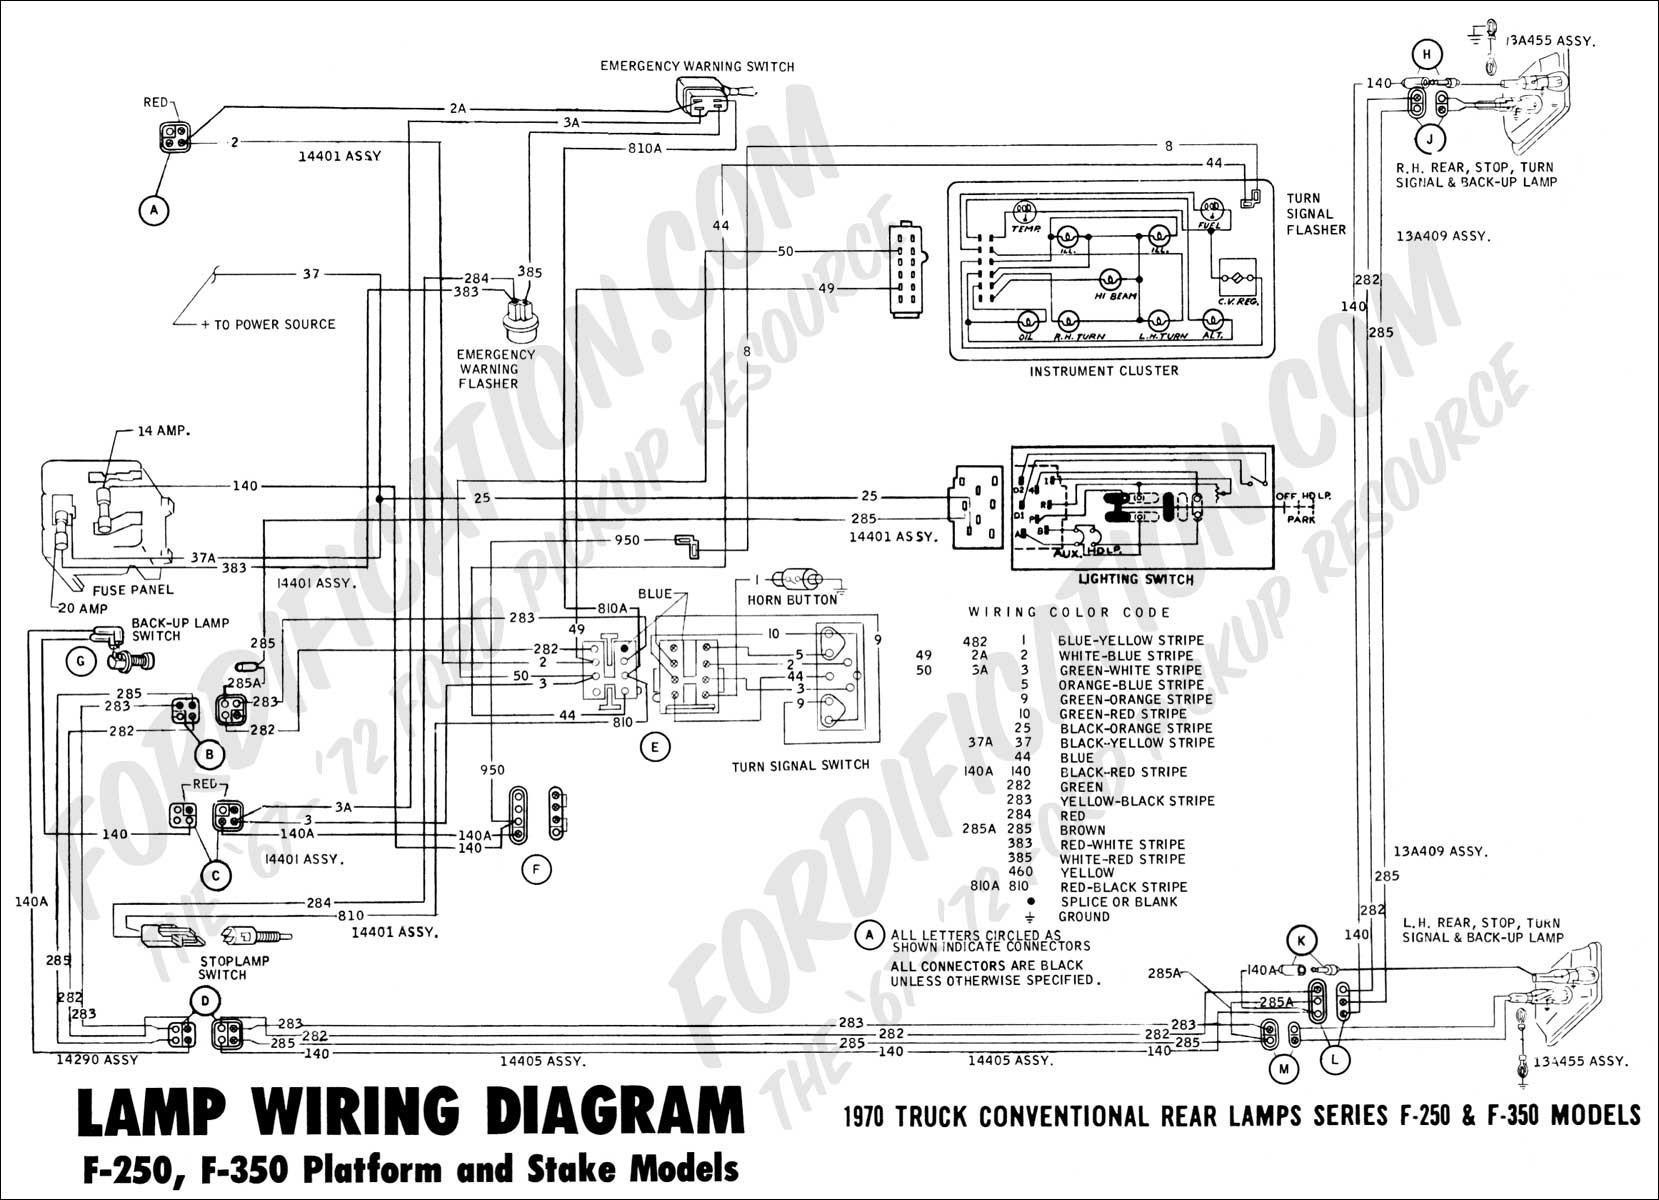 2003 Dodge Ram Tail Light Wiring Diagram